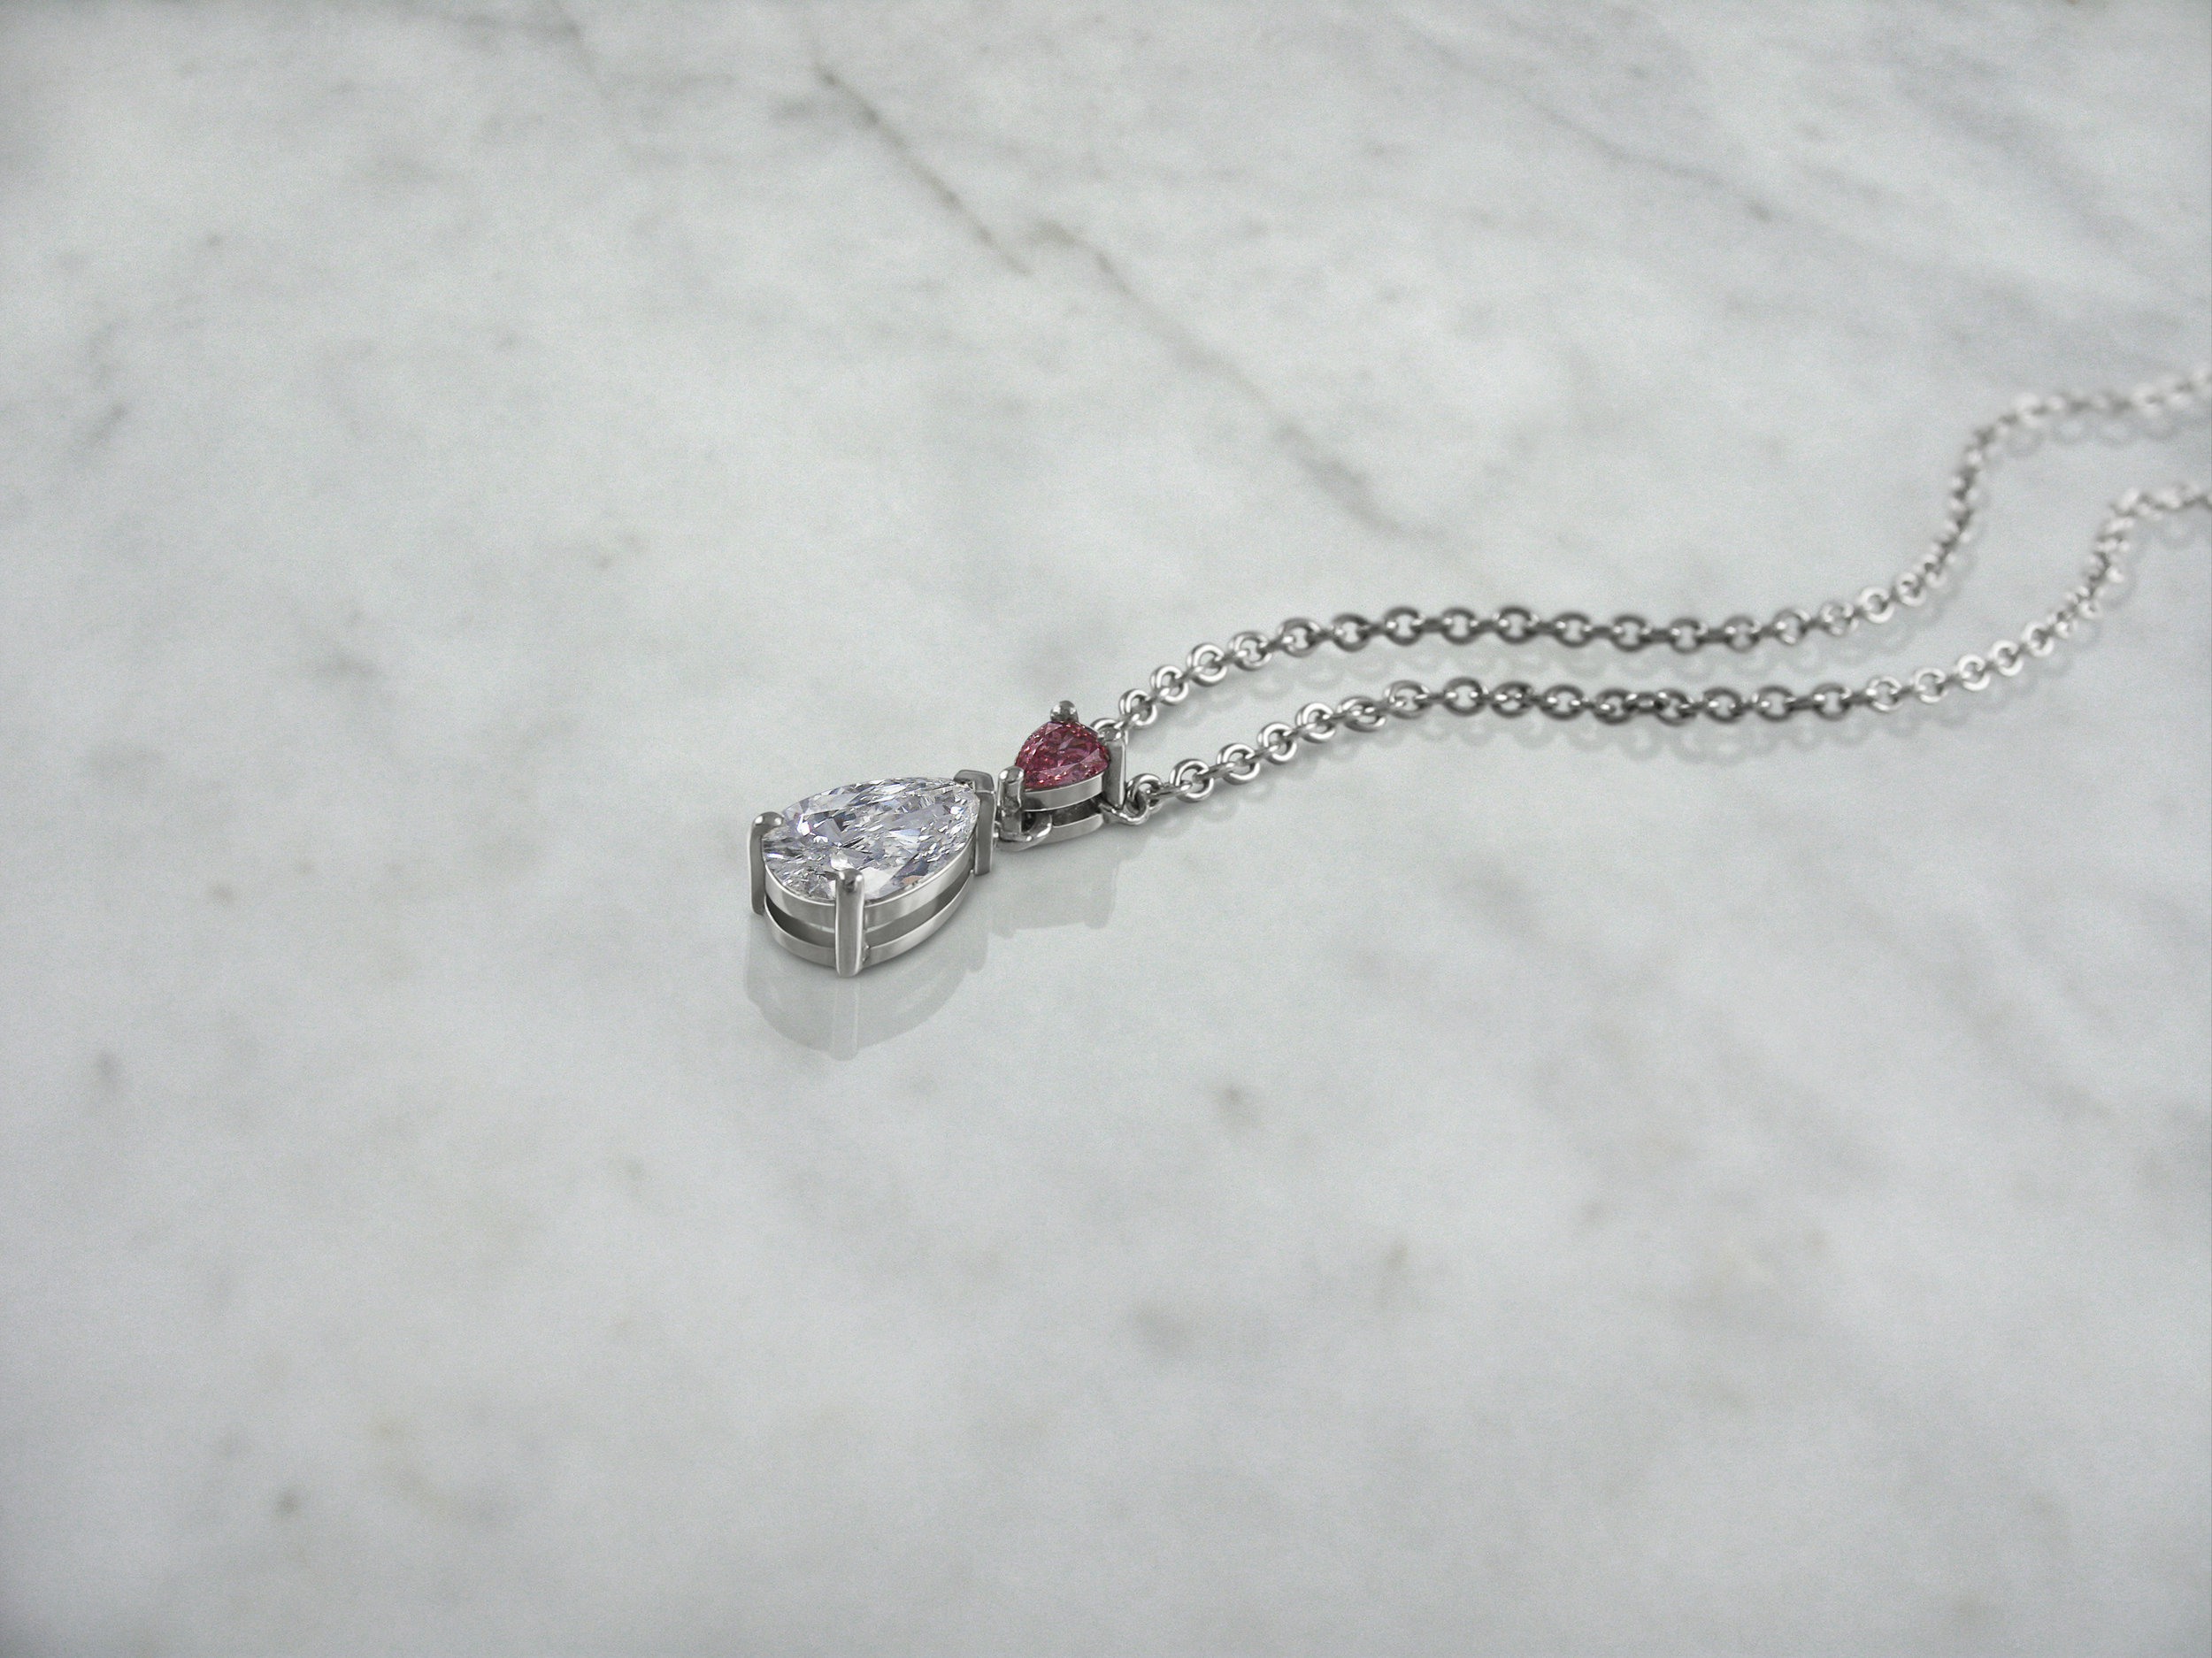 Pear shaped pink diamond and diamond pendant from the Fiorella collection